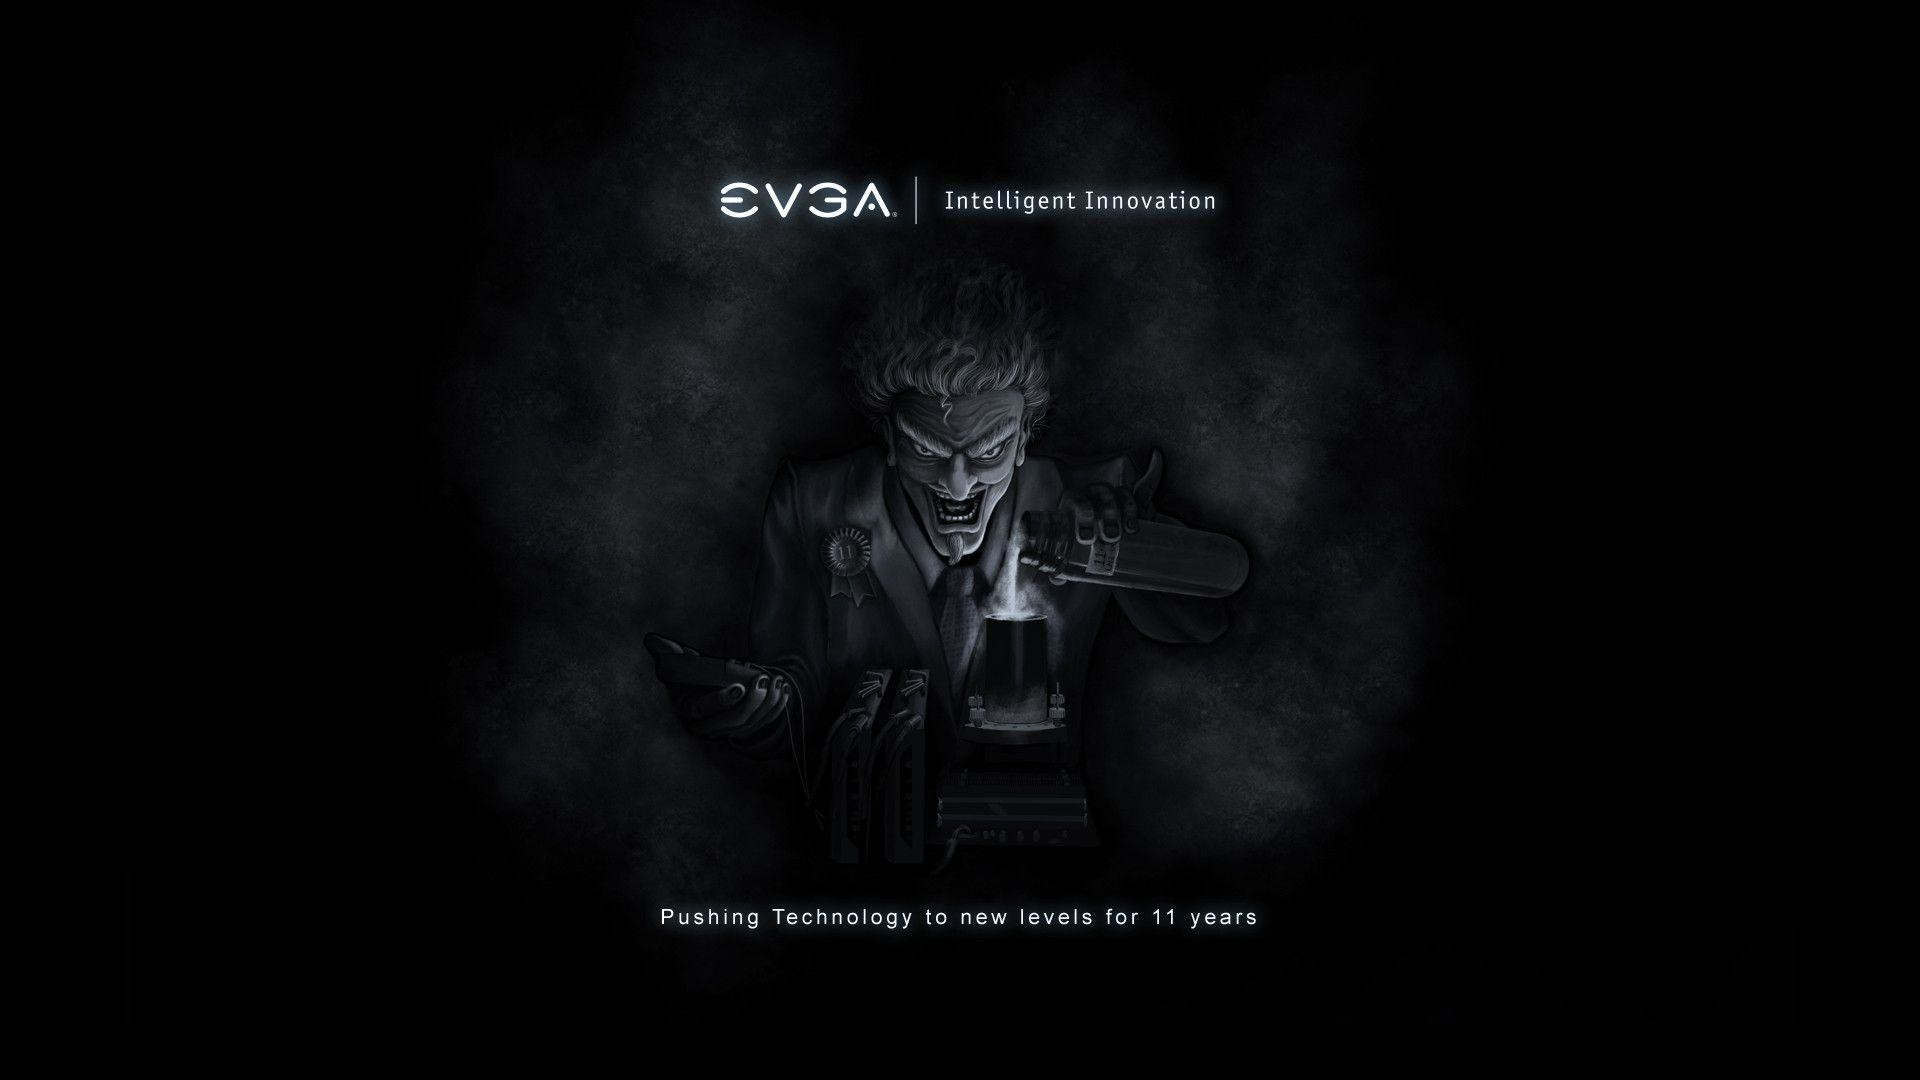 1920x1080 Wallpapers For > Nvidia Evga Wallpaper